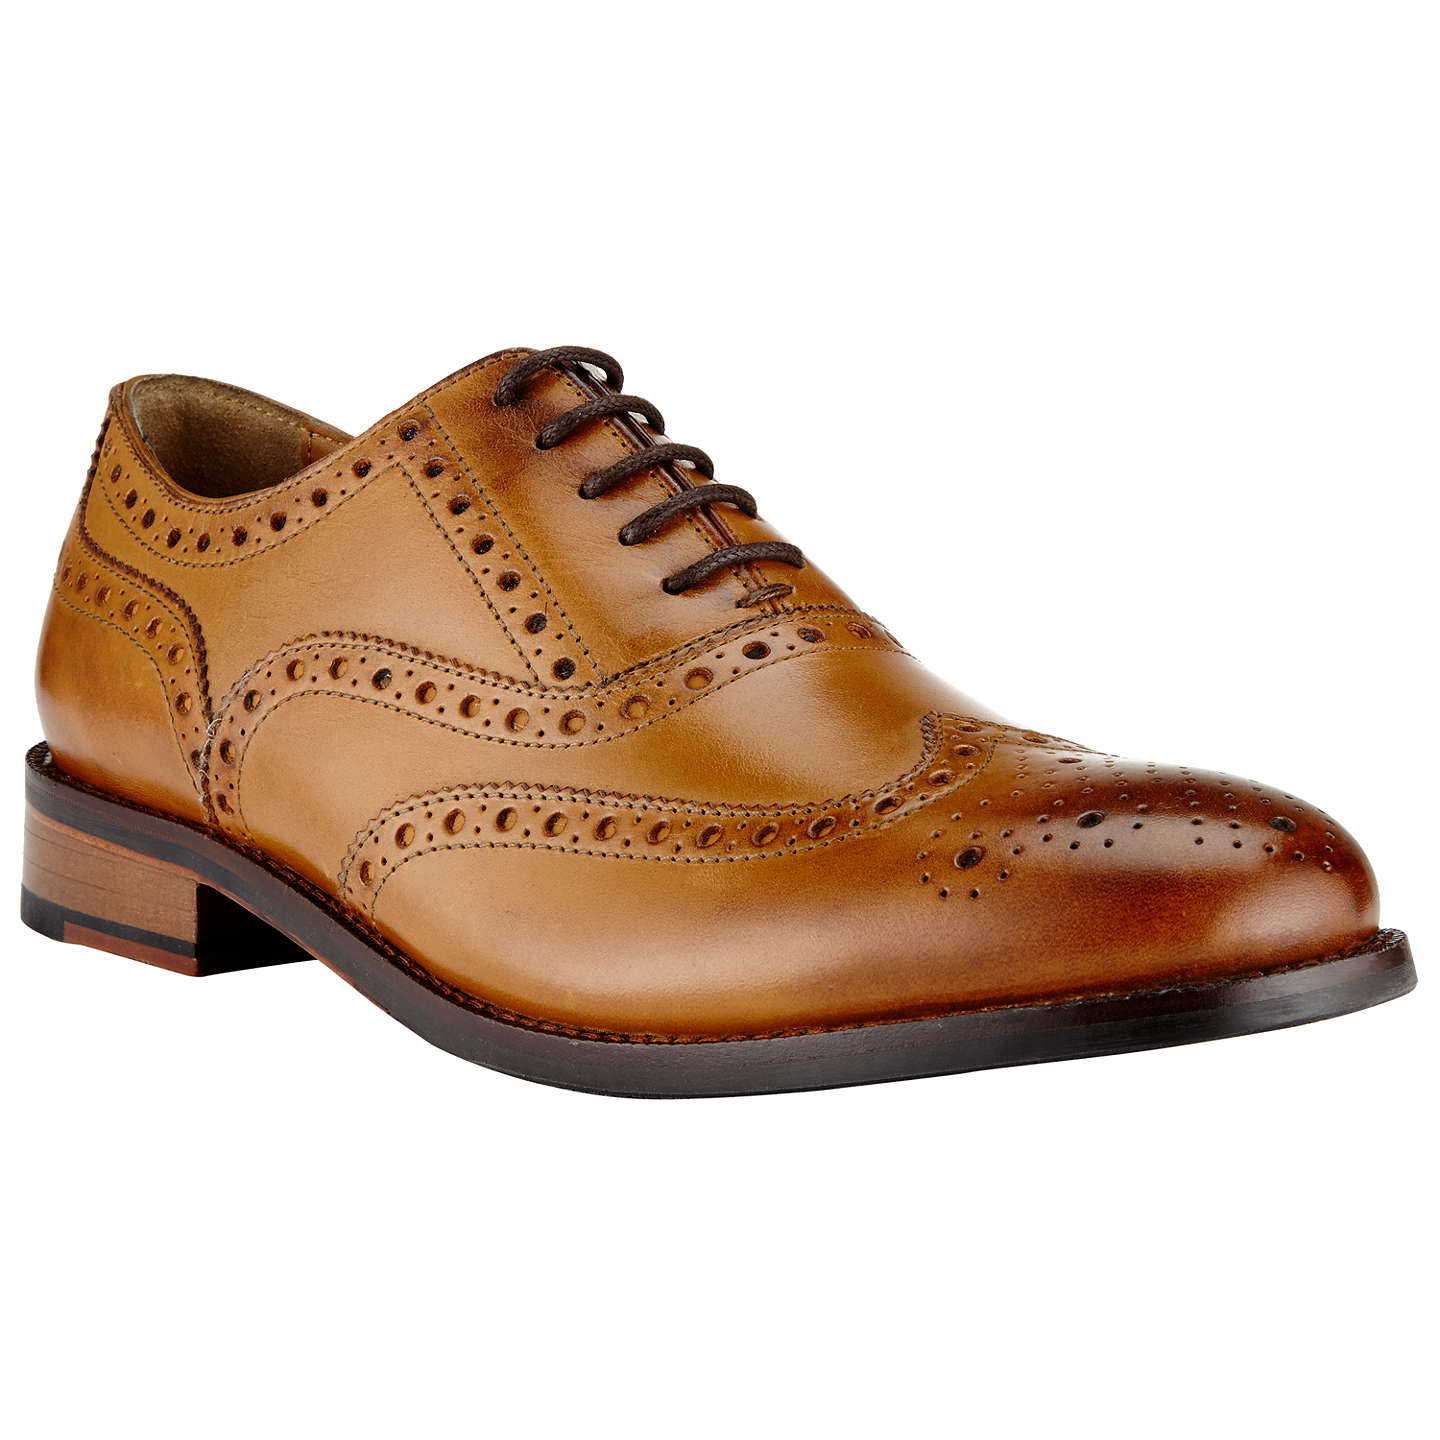 John Lewis Bentley Leather Lace-Up Brogues, Cognac At John